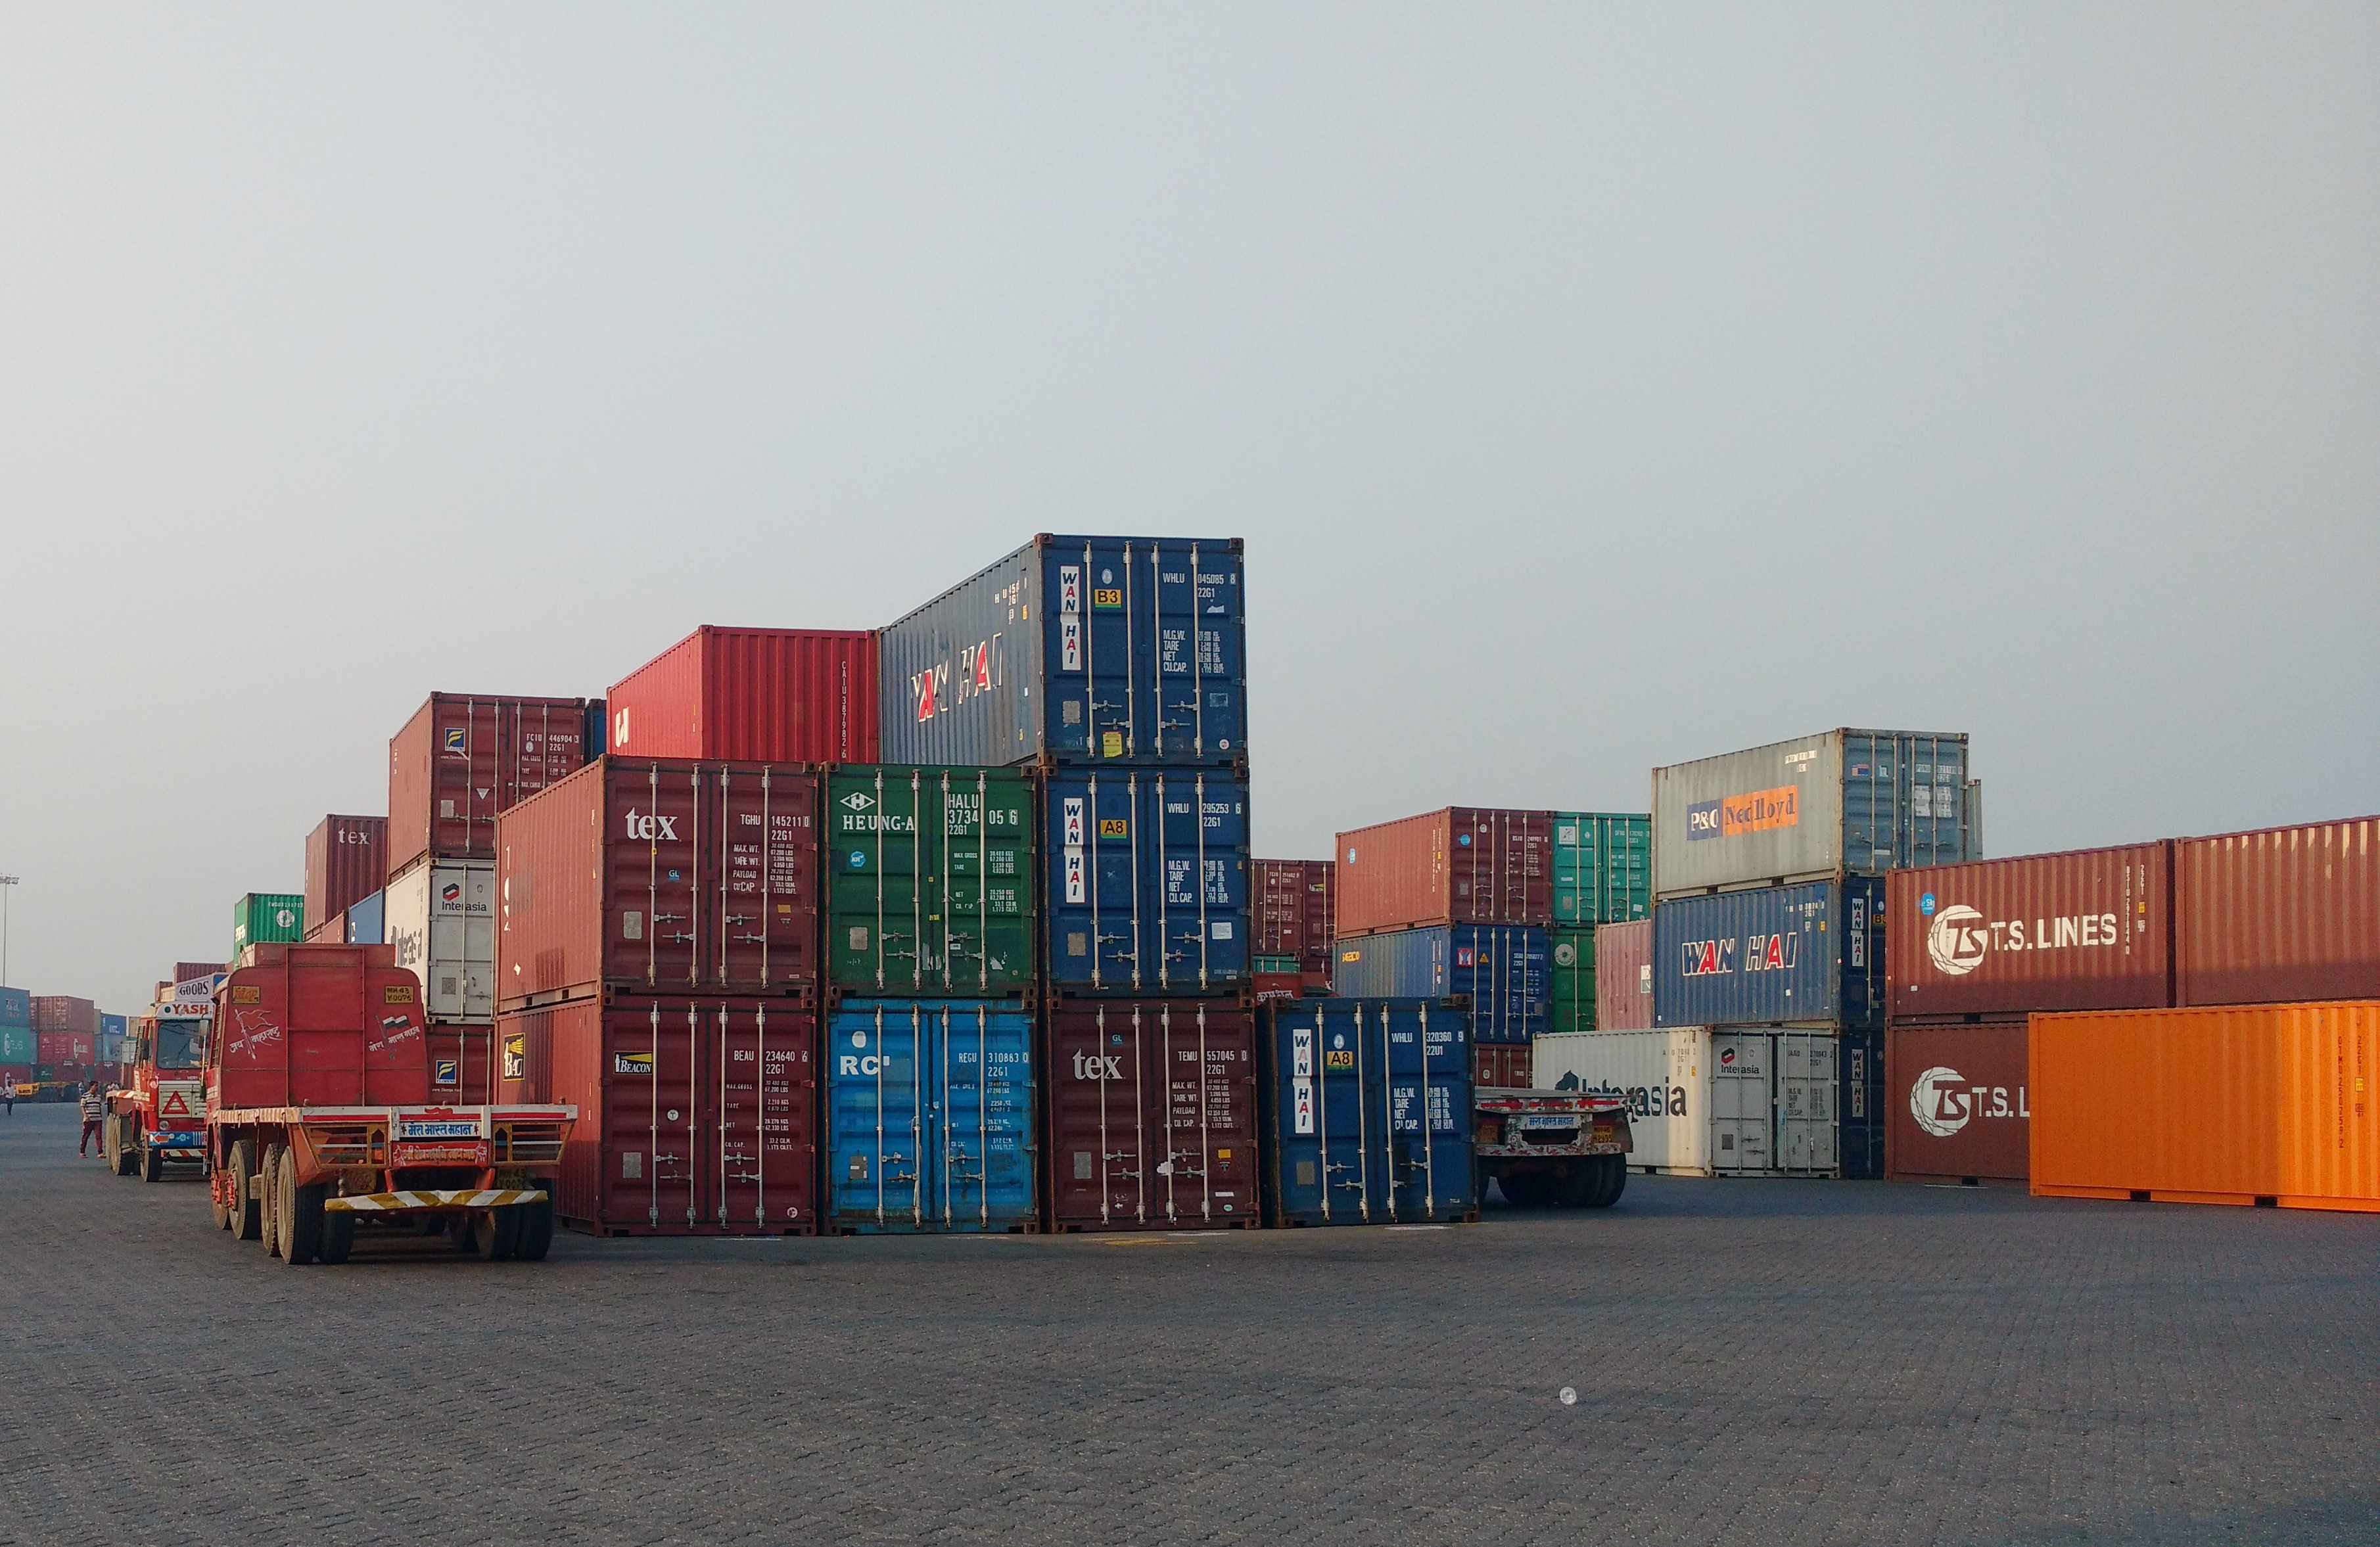 HTPL Container Freight Station